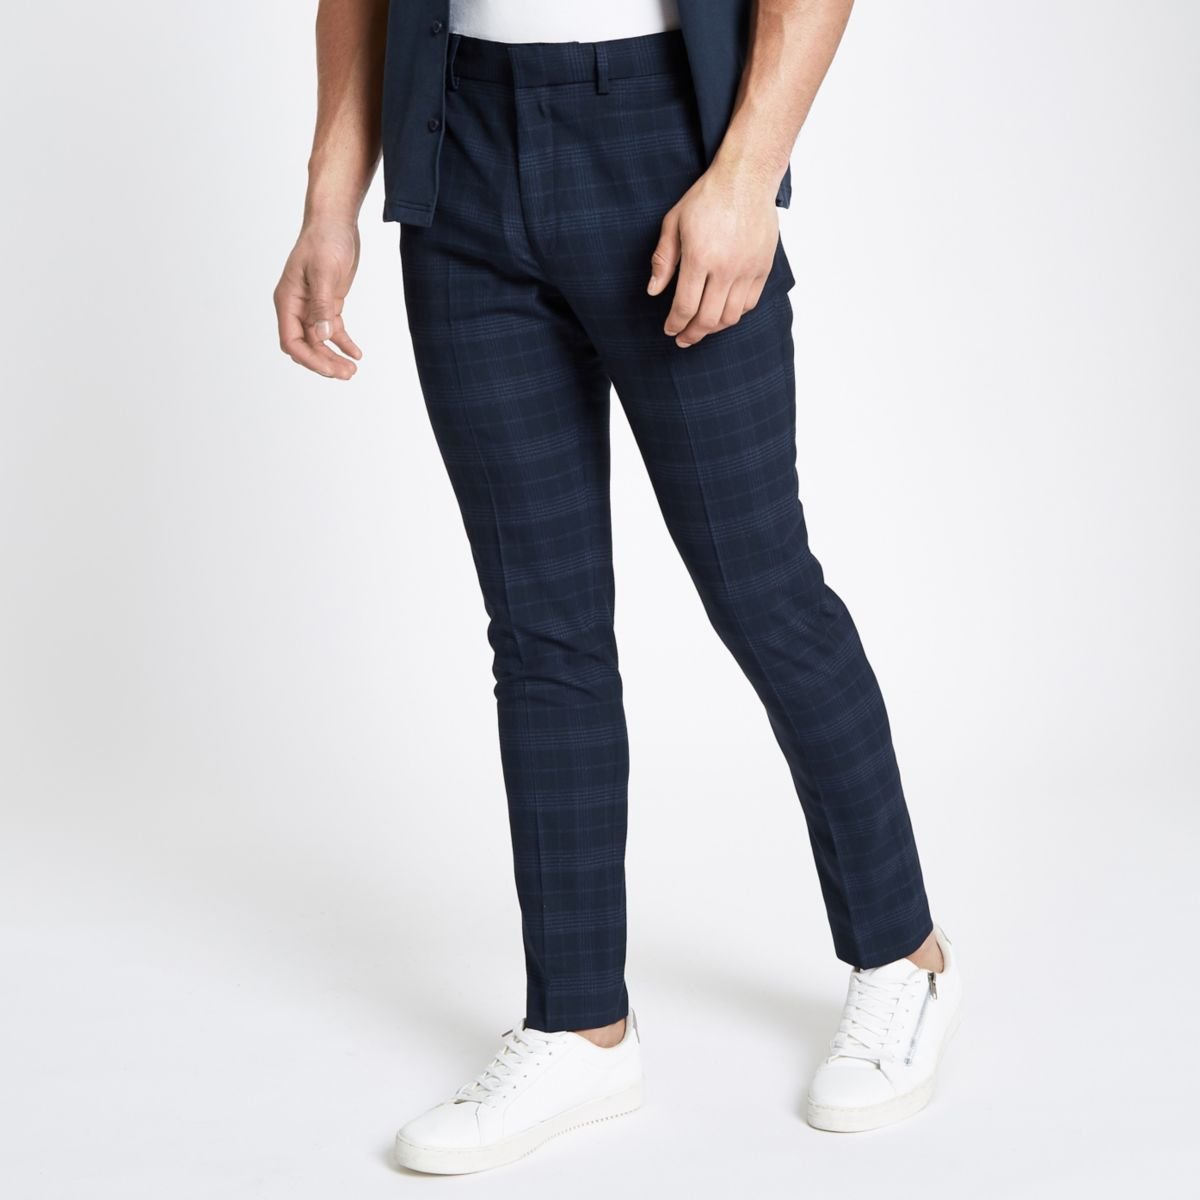 Blue check smart skinny trousers